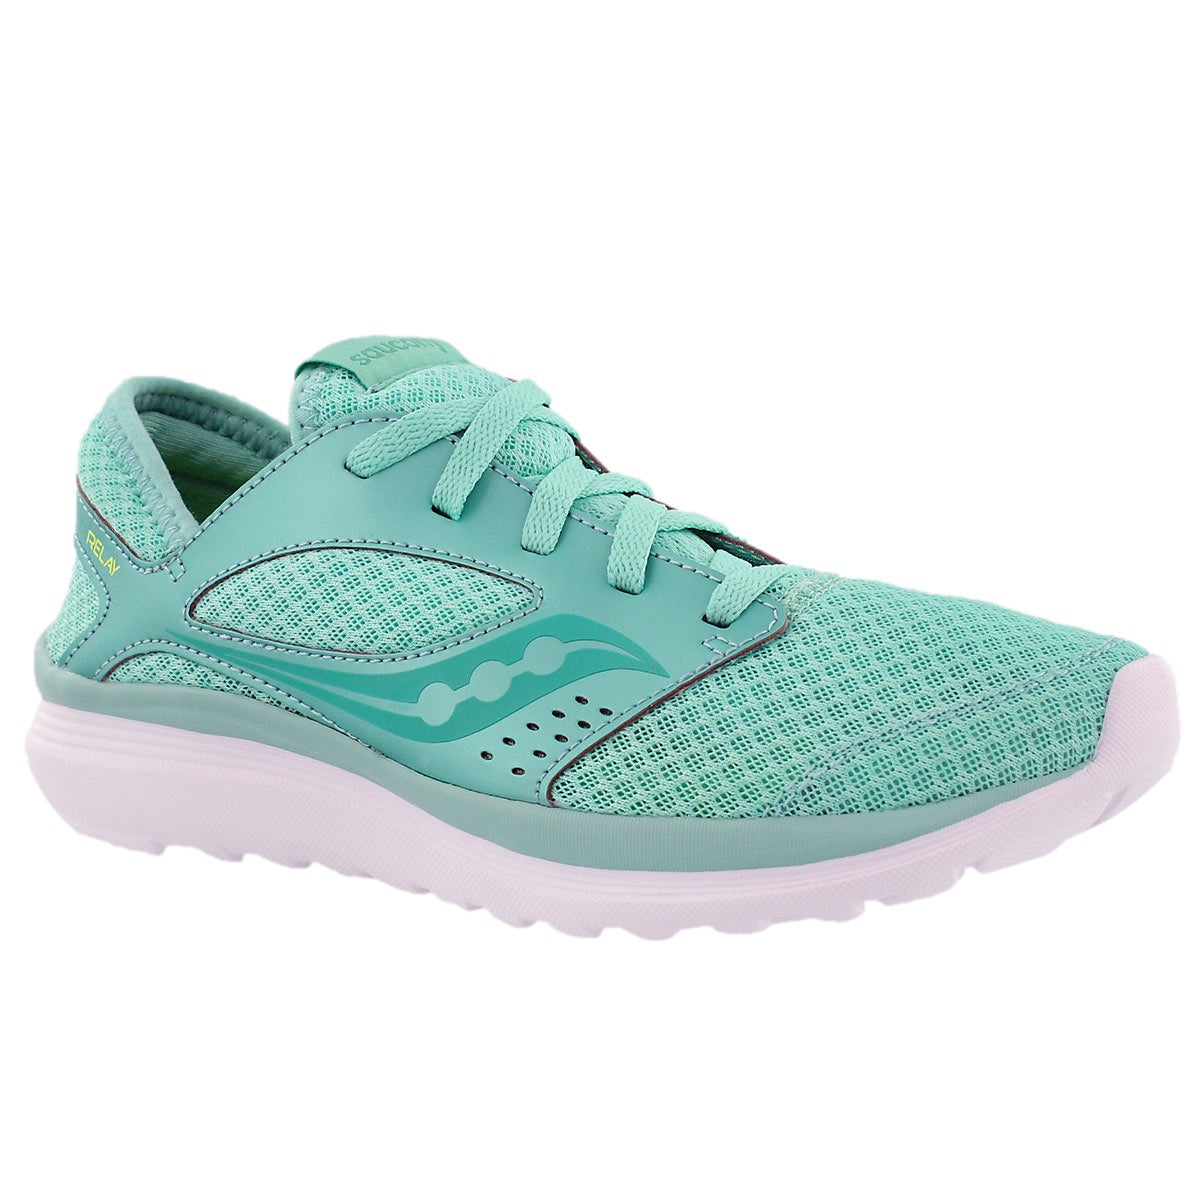 Lds Kineta Relay mint/teal running shoe